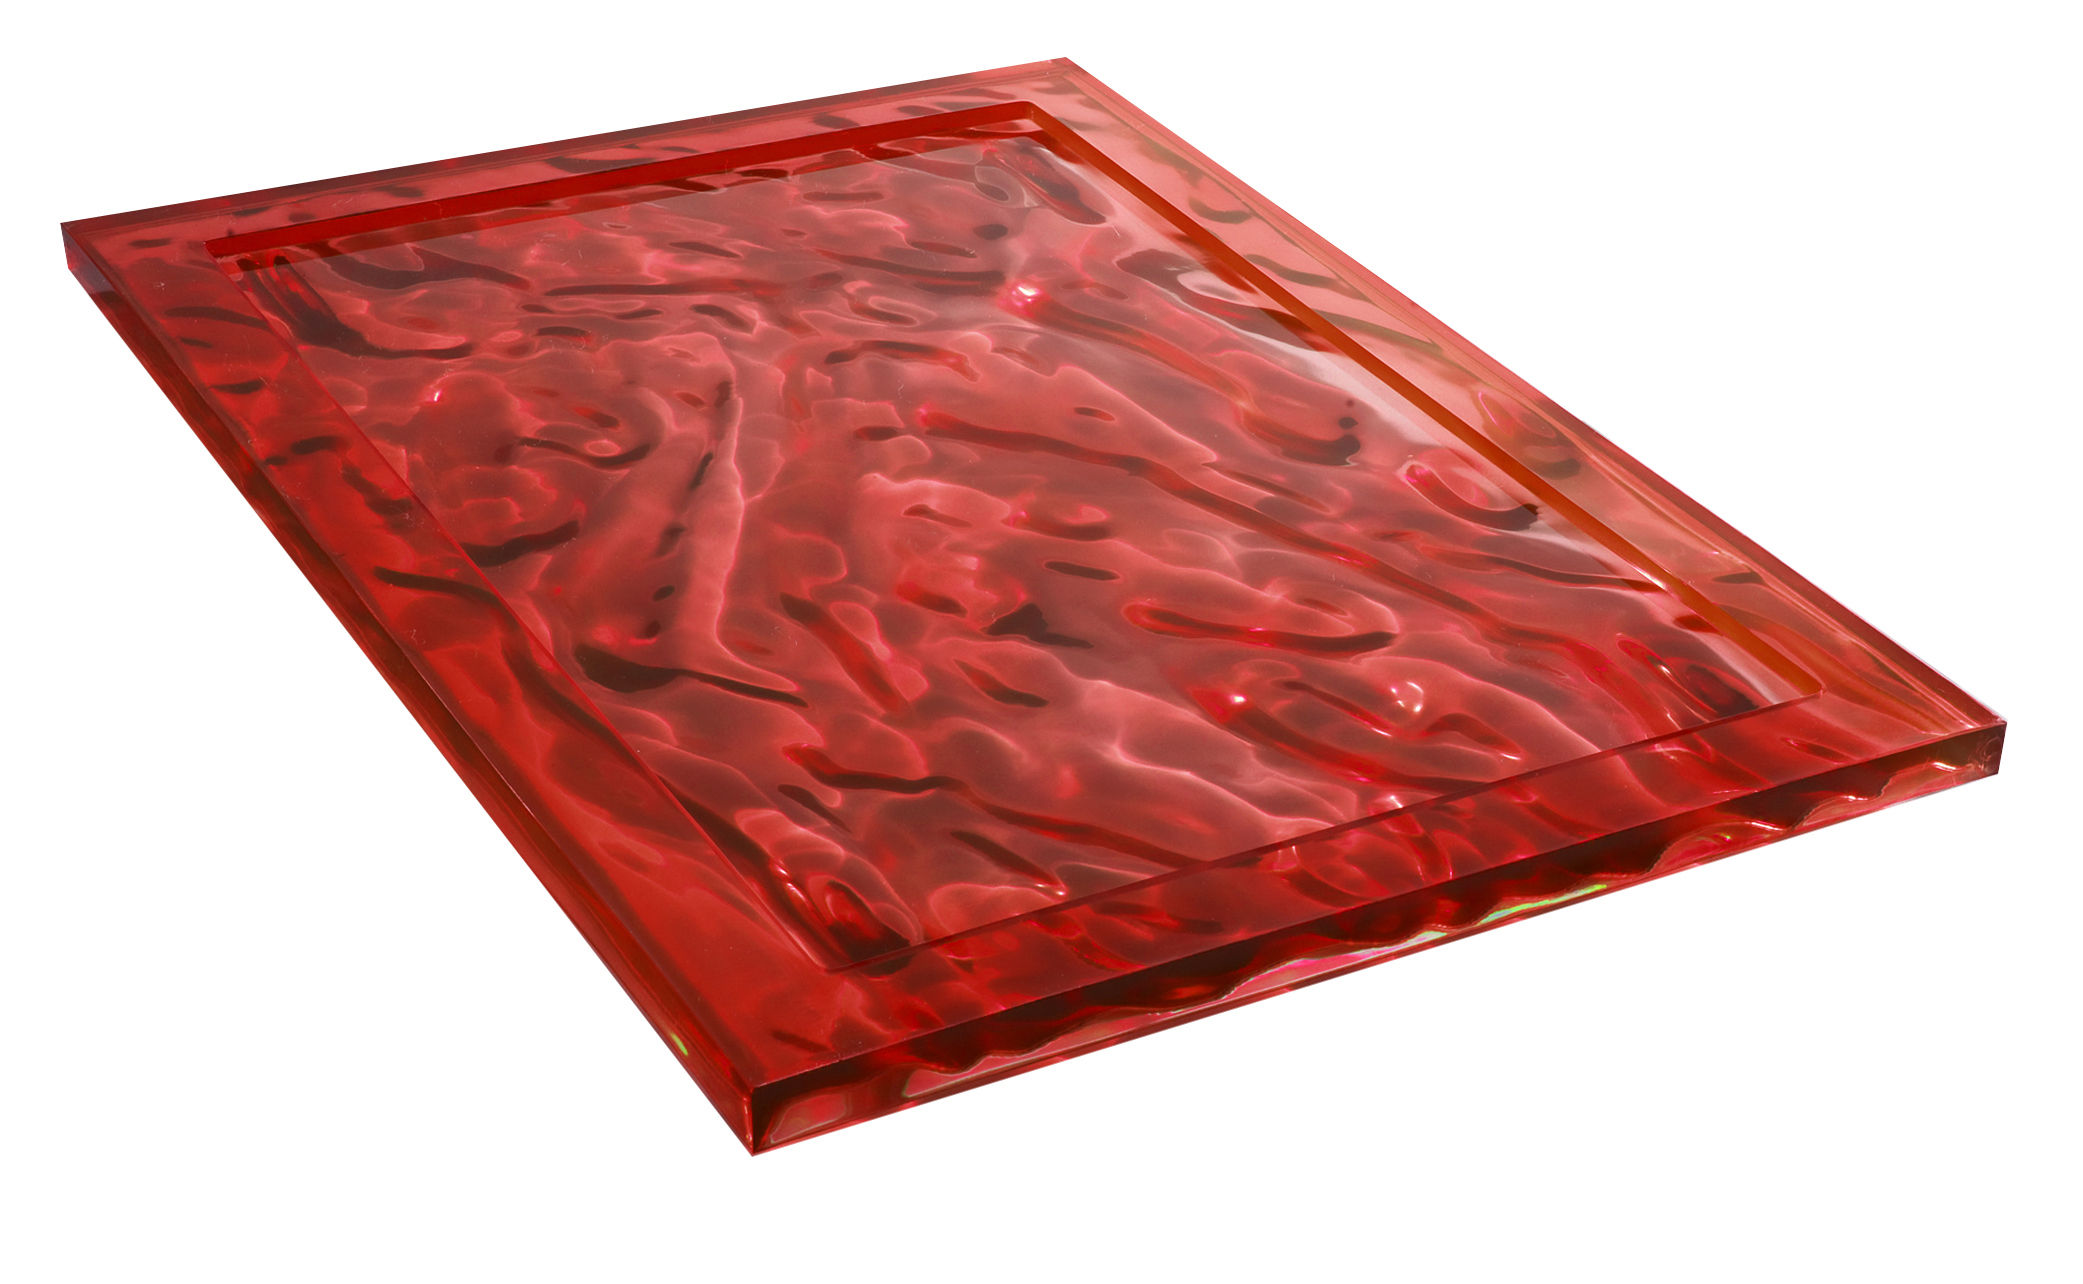 Tableware - Trays - Dune Tray - 55 x 38 cm by Kartell - Red - Technopolymer